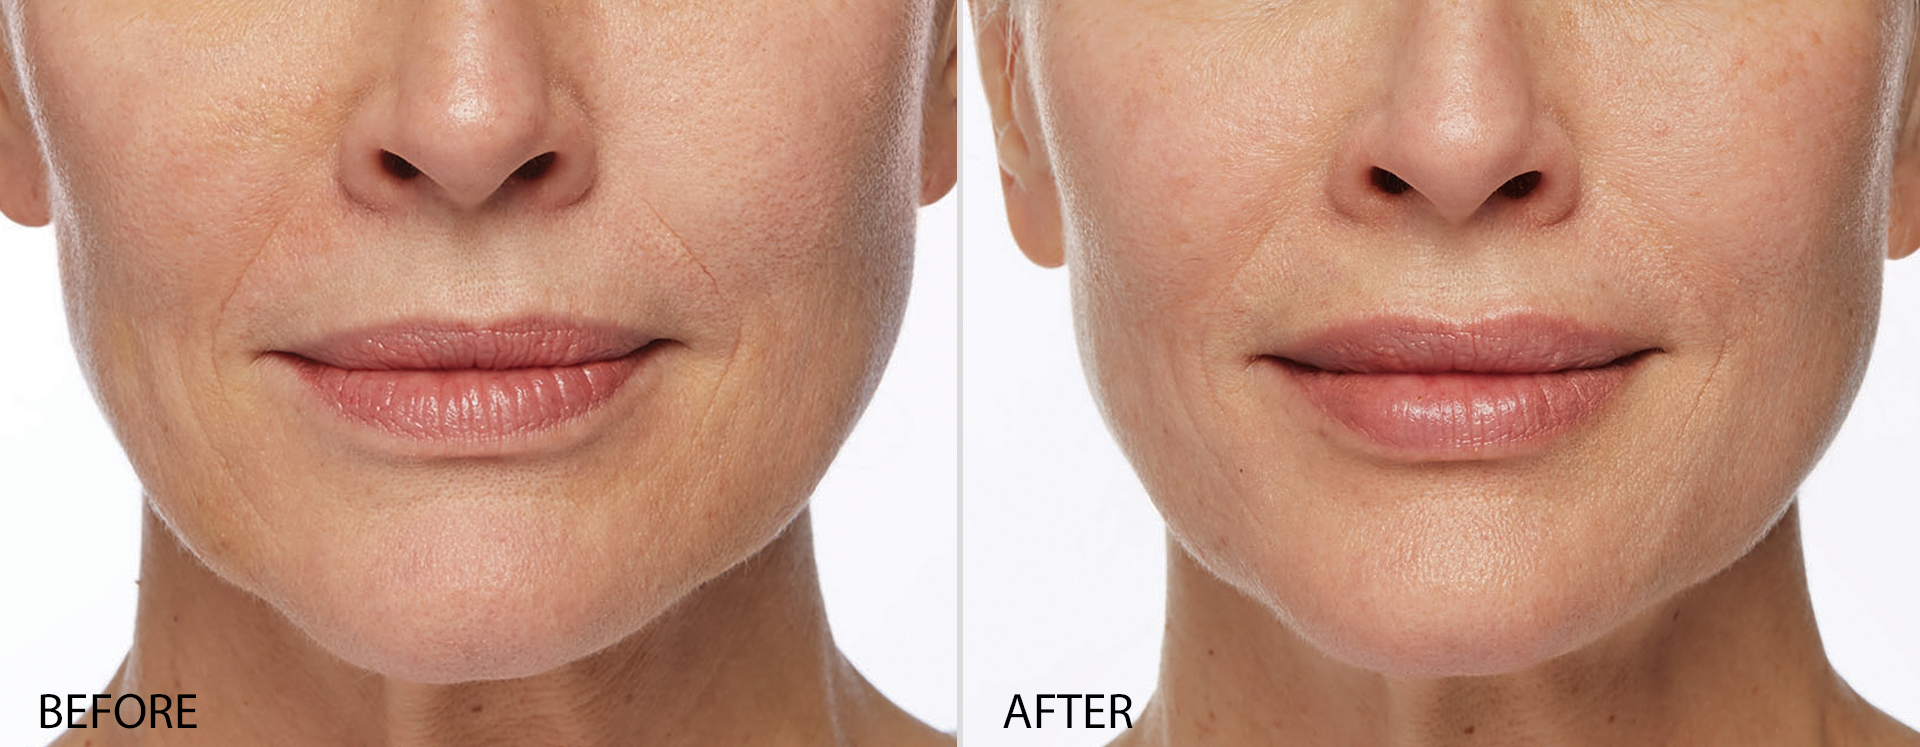 Dr. Terese Taylor M.D. - Cape Coral and Fort Lauderdale Doctor - Restylane Silk - Before and After